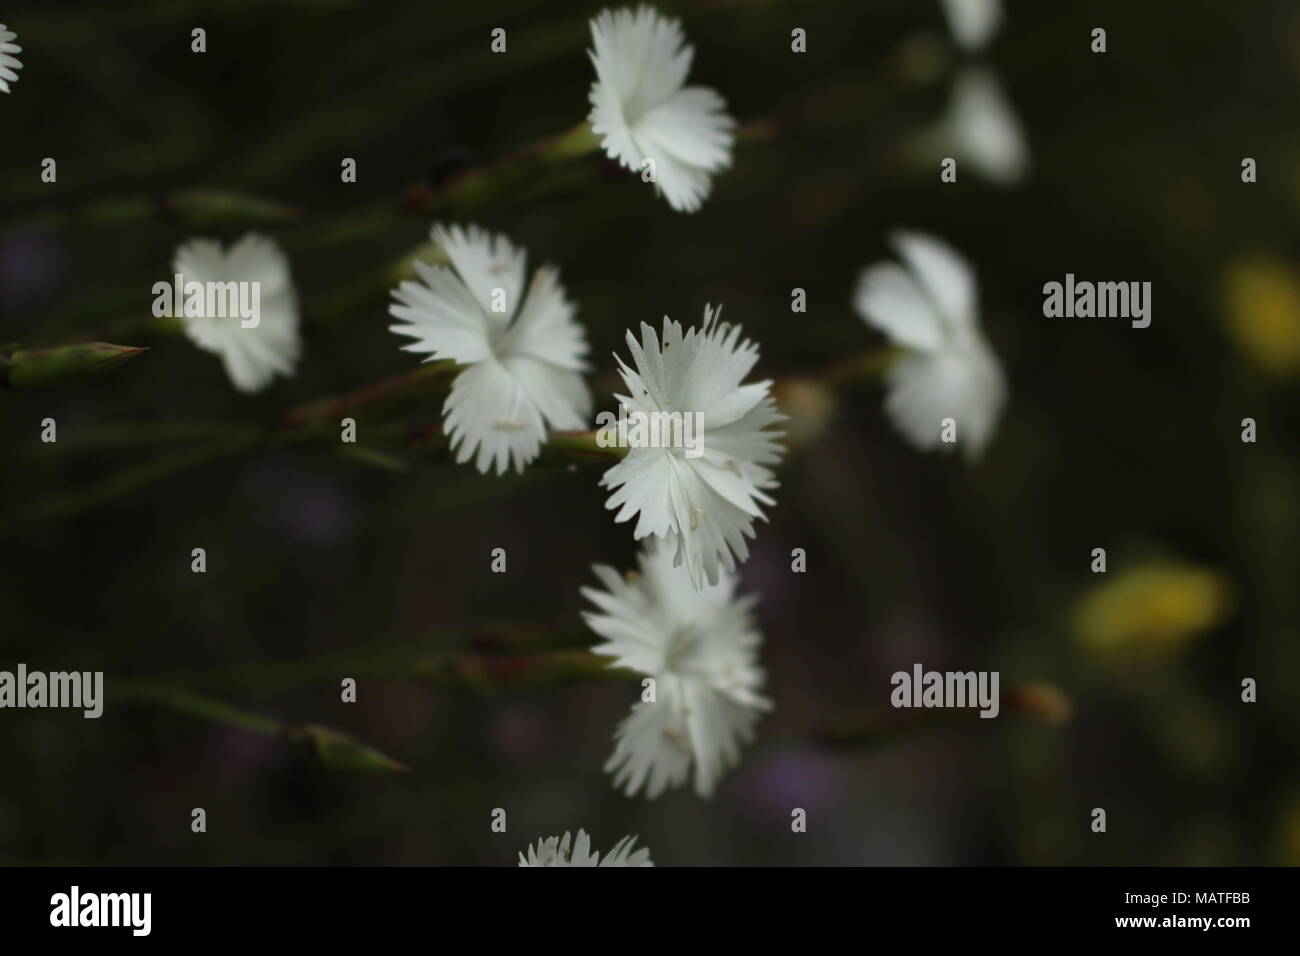 Small White Flowers Of Wild Carnation Species Stock Photo 178789167